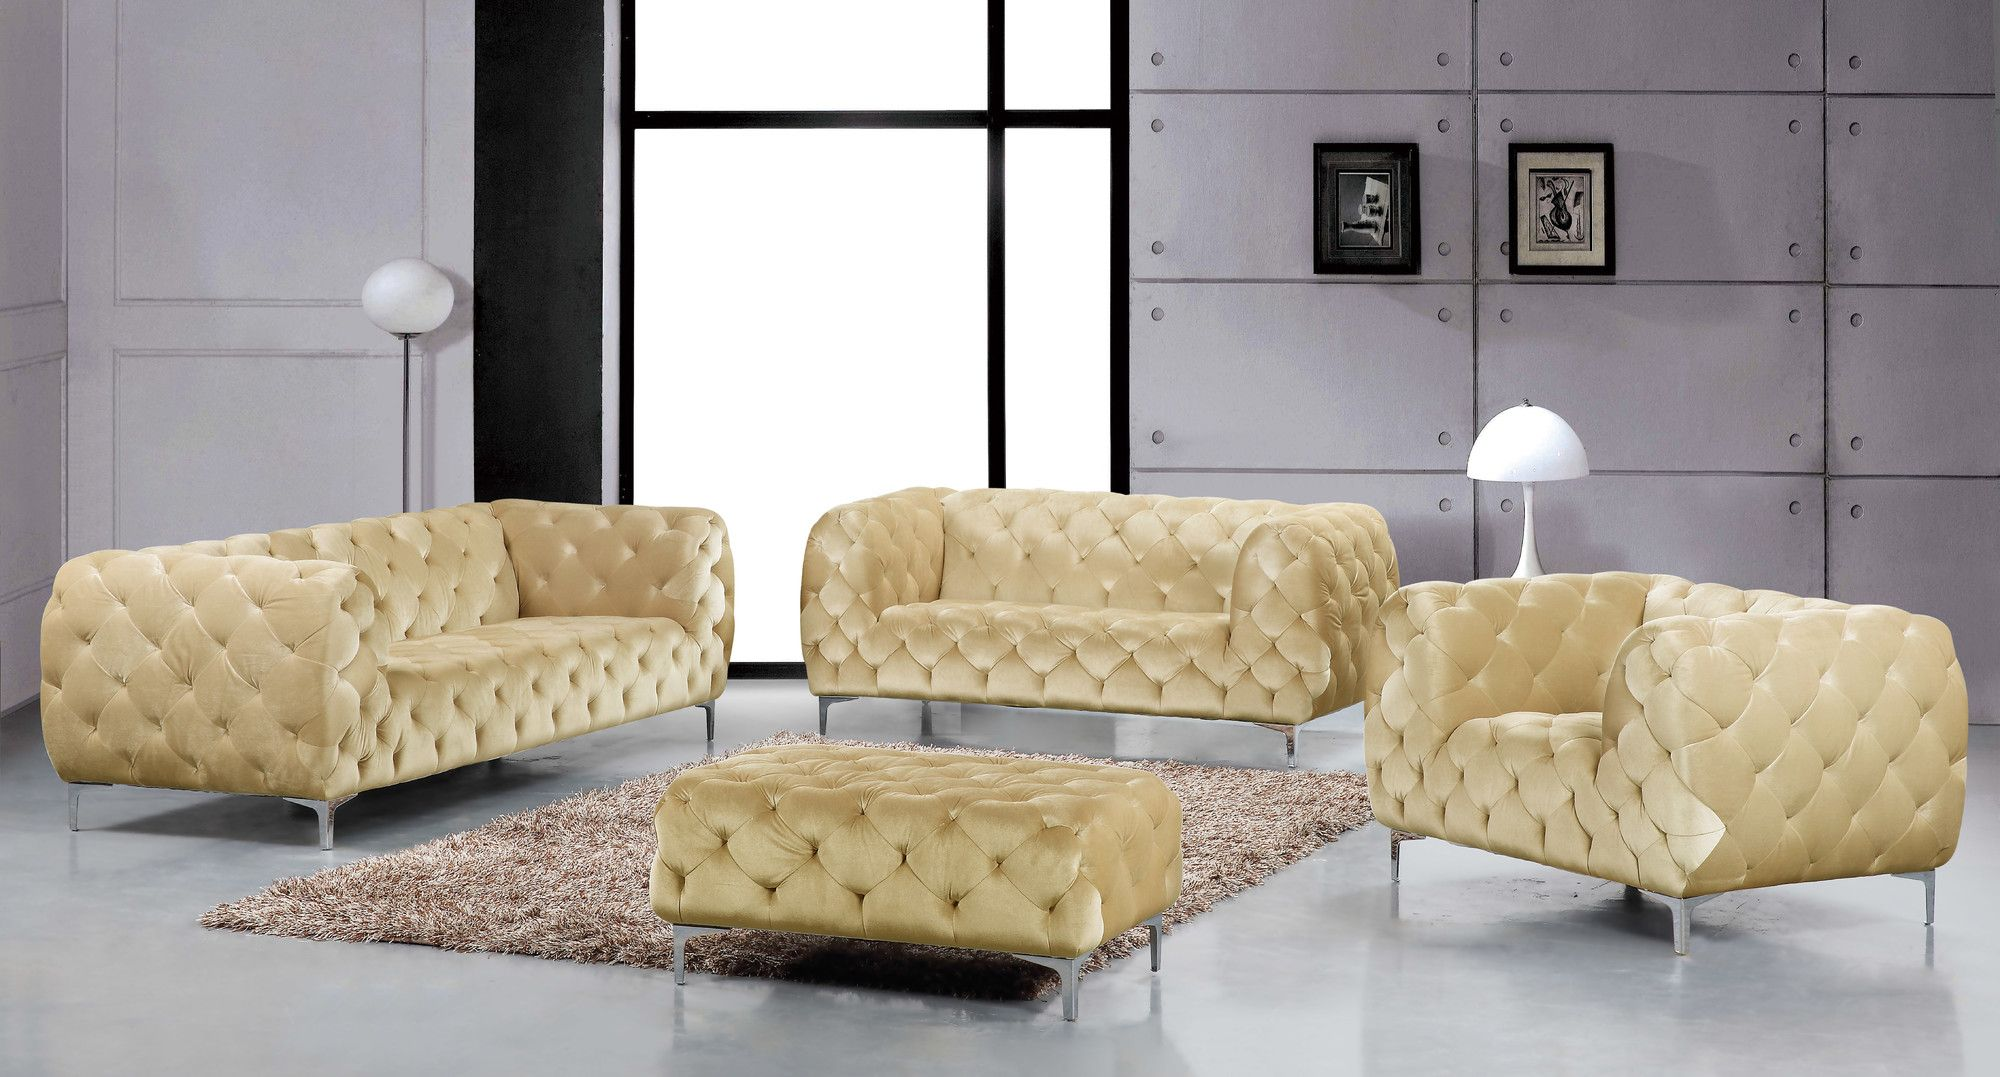 Furniture usaMeridian Furniture USA Mercer Sofa   Reviews   Wayfair   1336  . Living Room Chairs Usa. Home Design Ideas